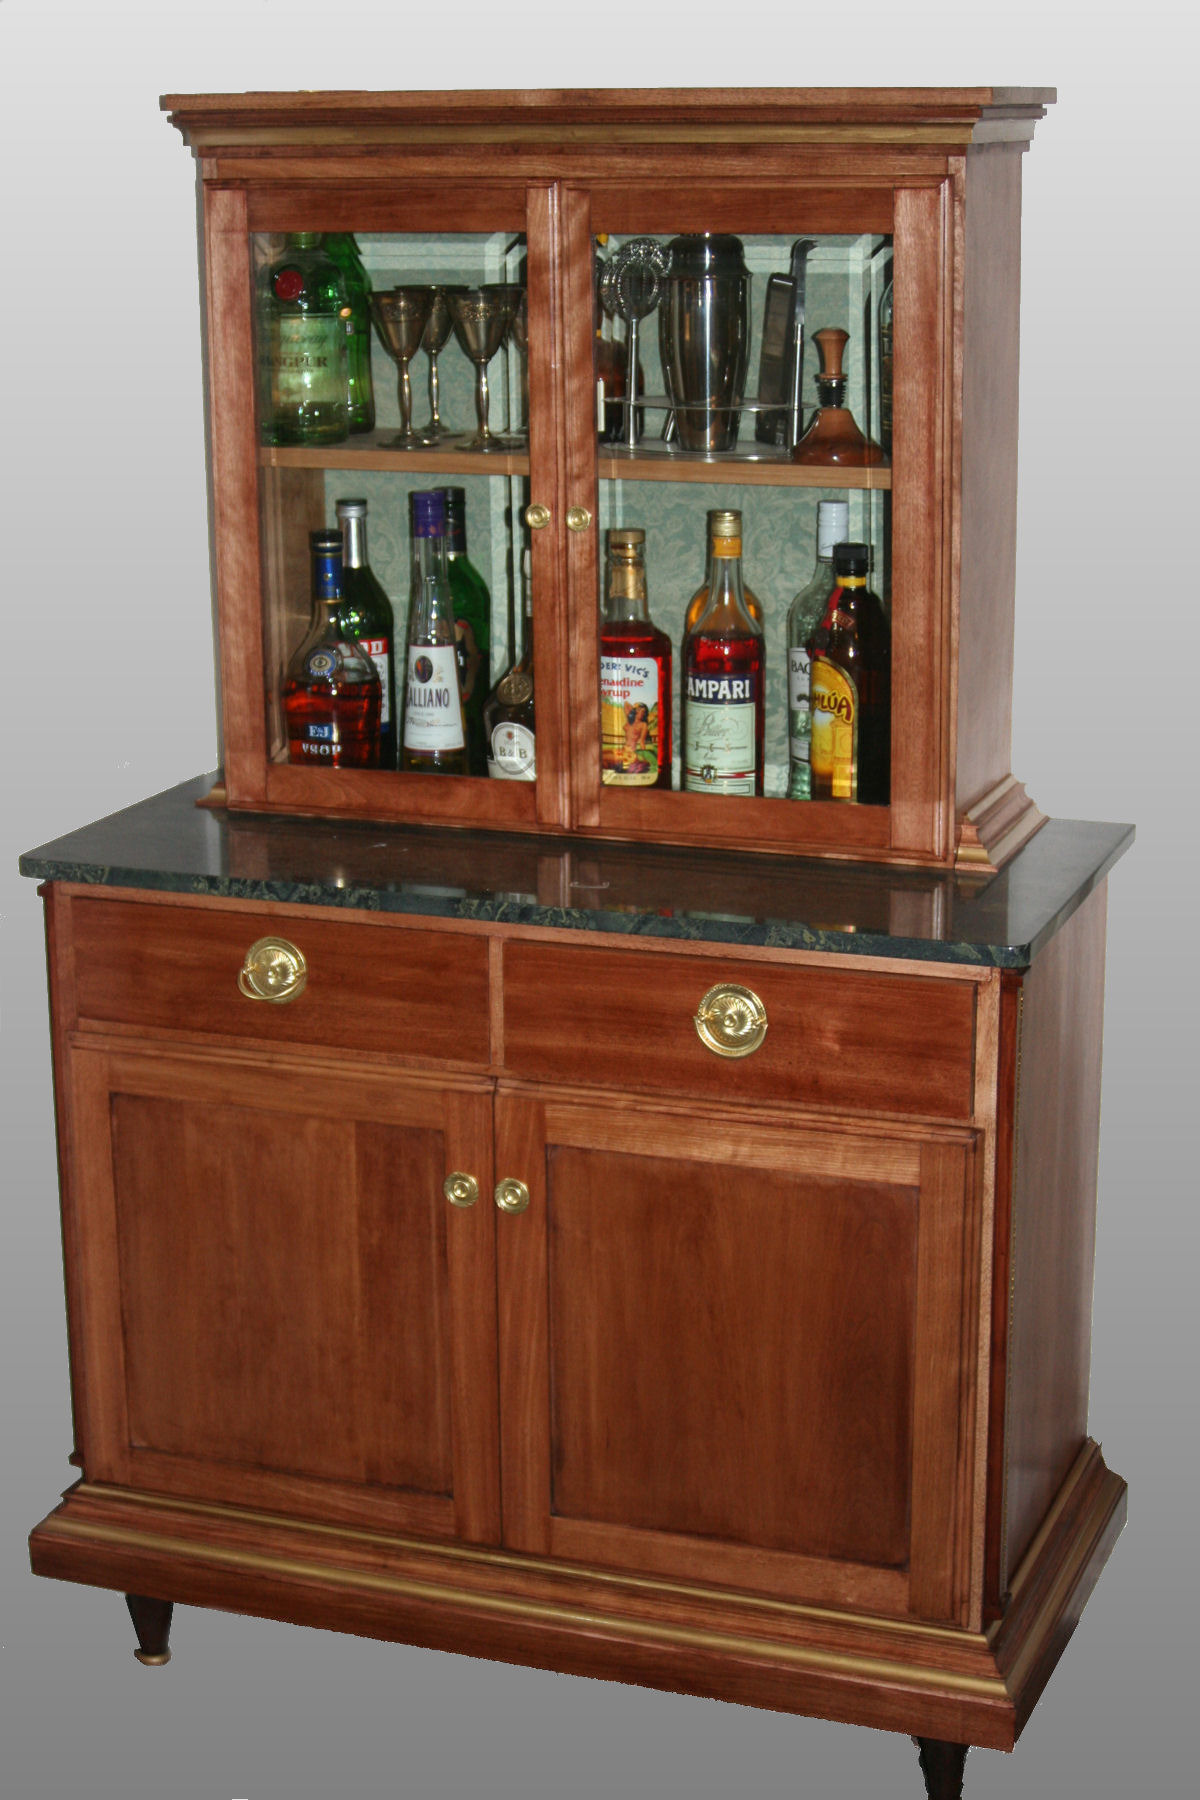 marvelous wooden liquor cabinet ikea plus glass door and drawers and golden handle for home furniture ideas hide a bar liquor cabinet china cabinet ikea ikea china cabinet liquor cabinets ikea cheap w